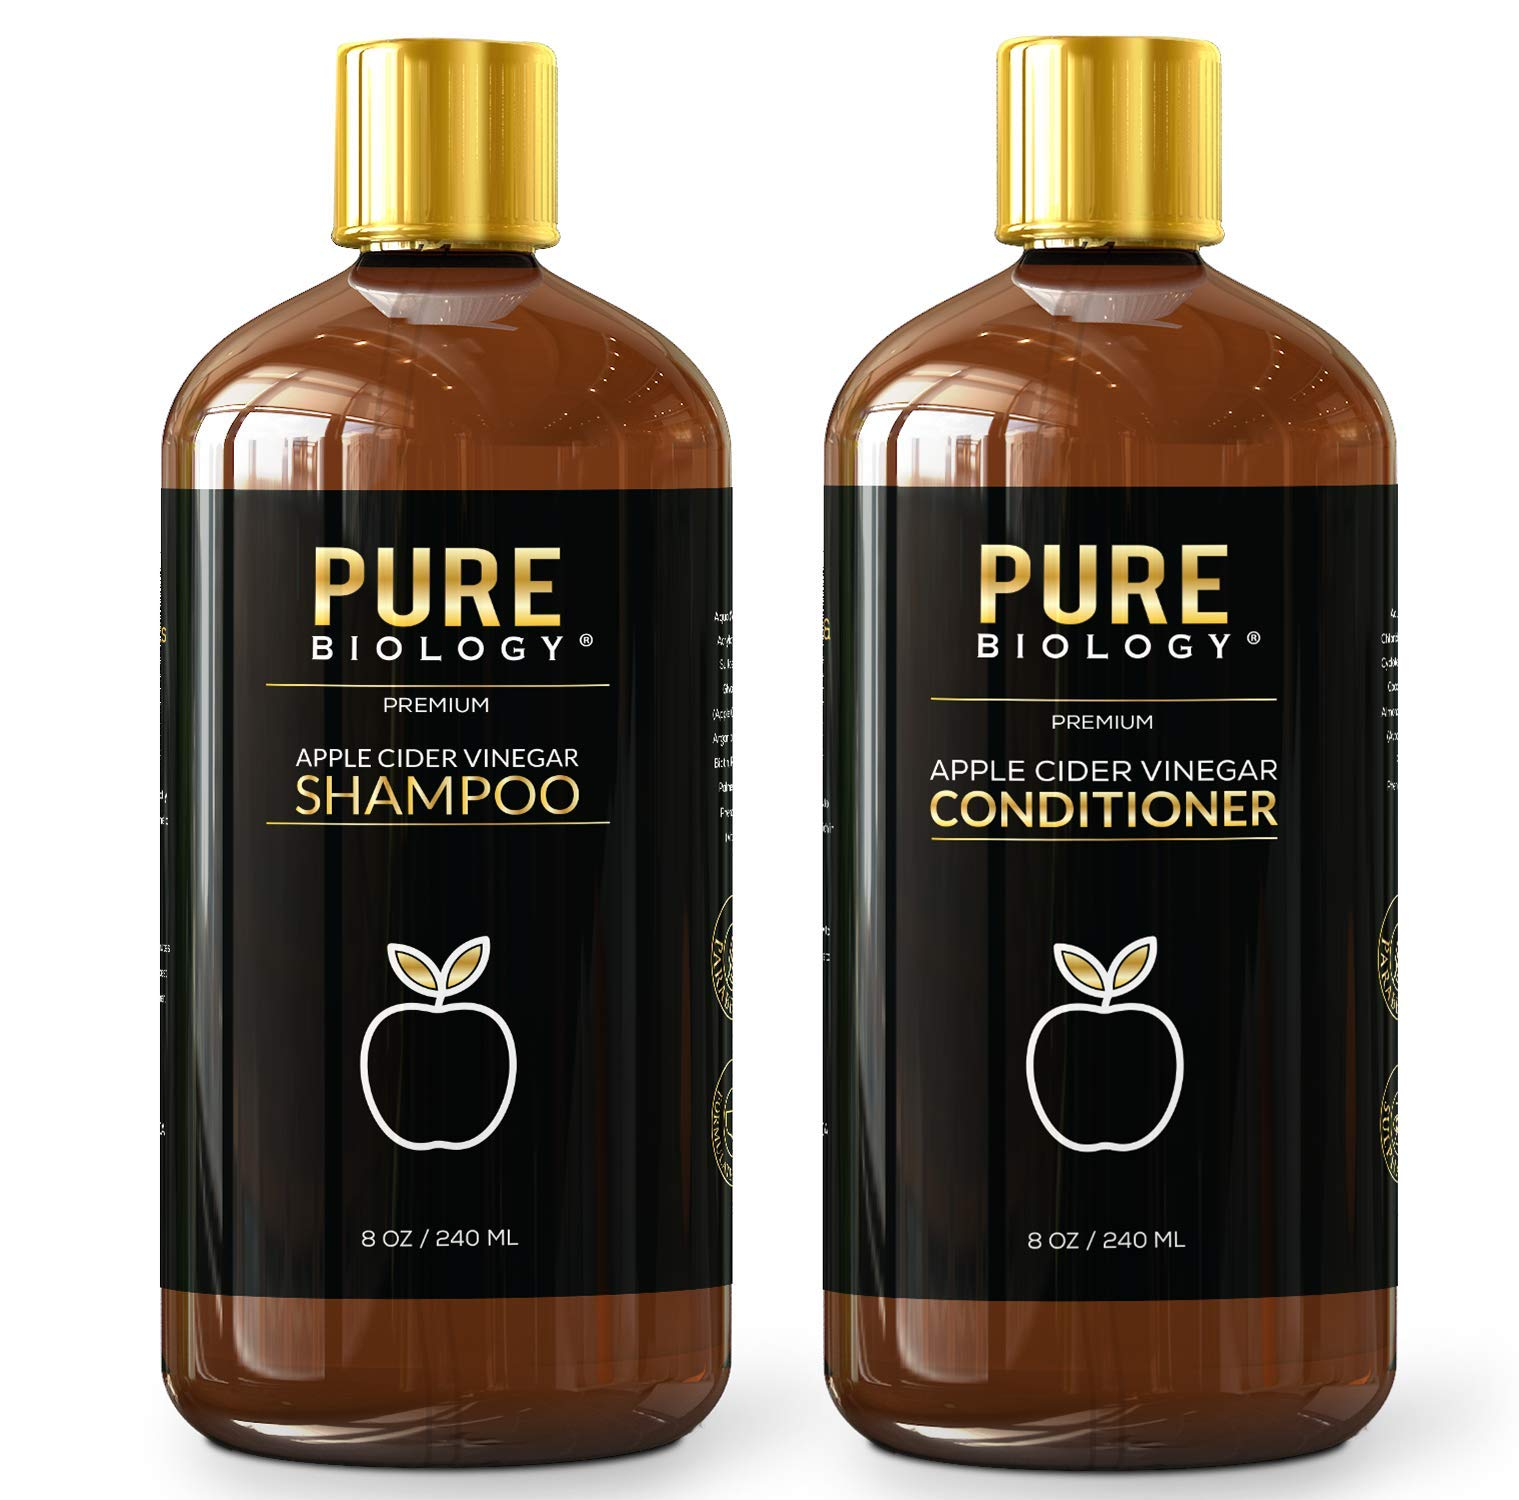 Pure Biology Premium Apple Cider Vinegar Shampoo & Conditioner Set to Increase Hair Growth, Shine, Hydration & Reduce Dry, Itchy Scalp, Dandruff & Frizz for Men & Women, Sulfate Free by Pure Biology